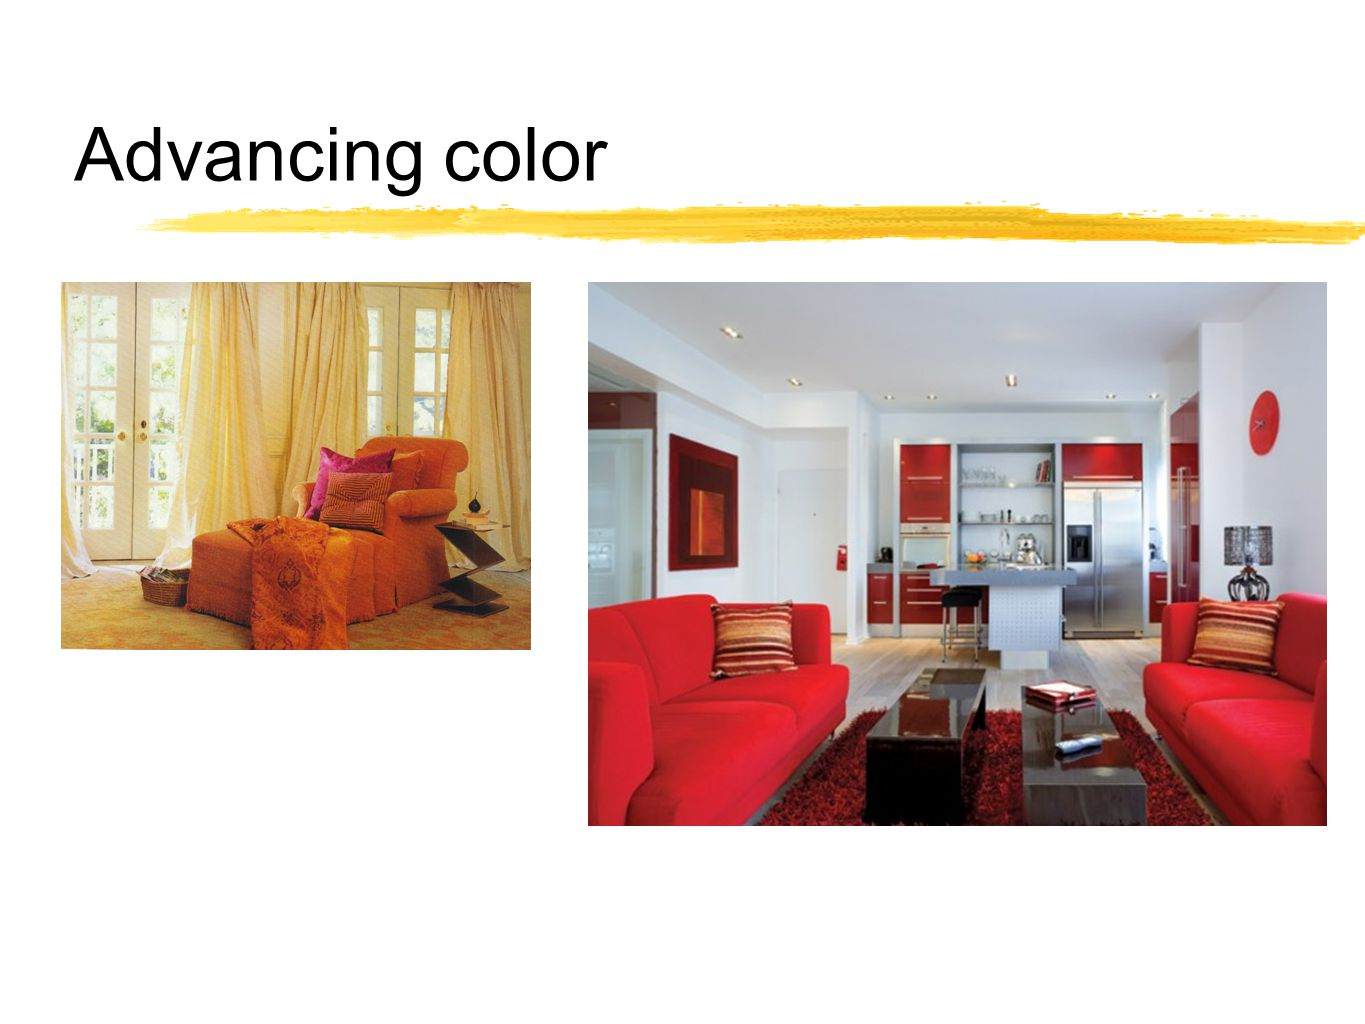 Chapter 4 Elements: Light and Color. - ppt video online download